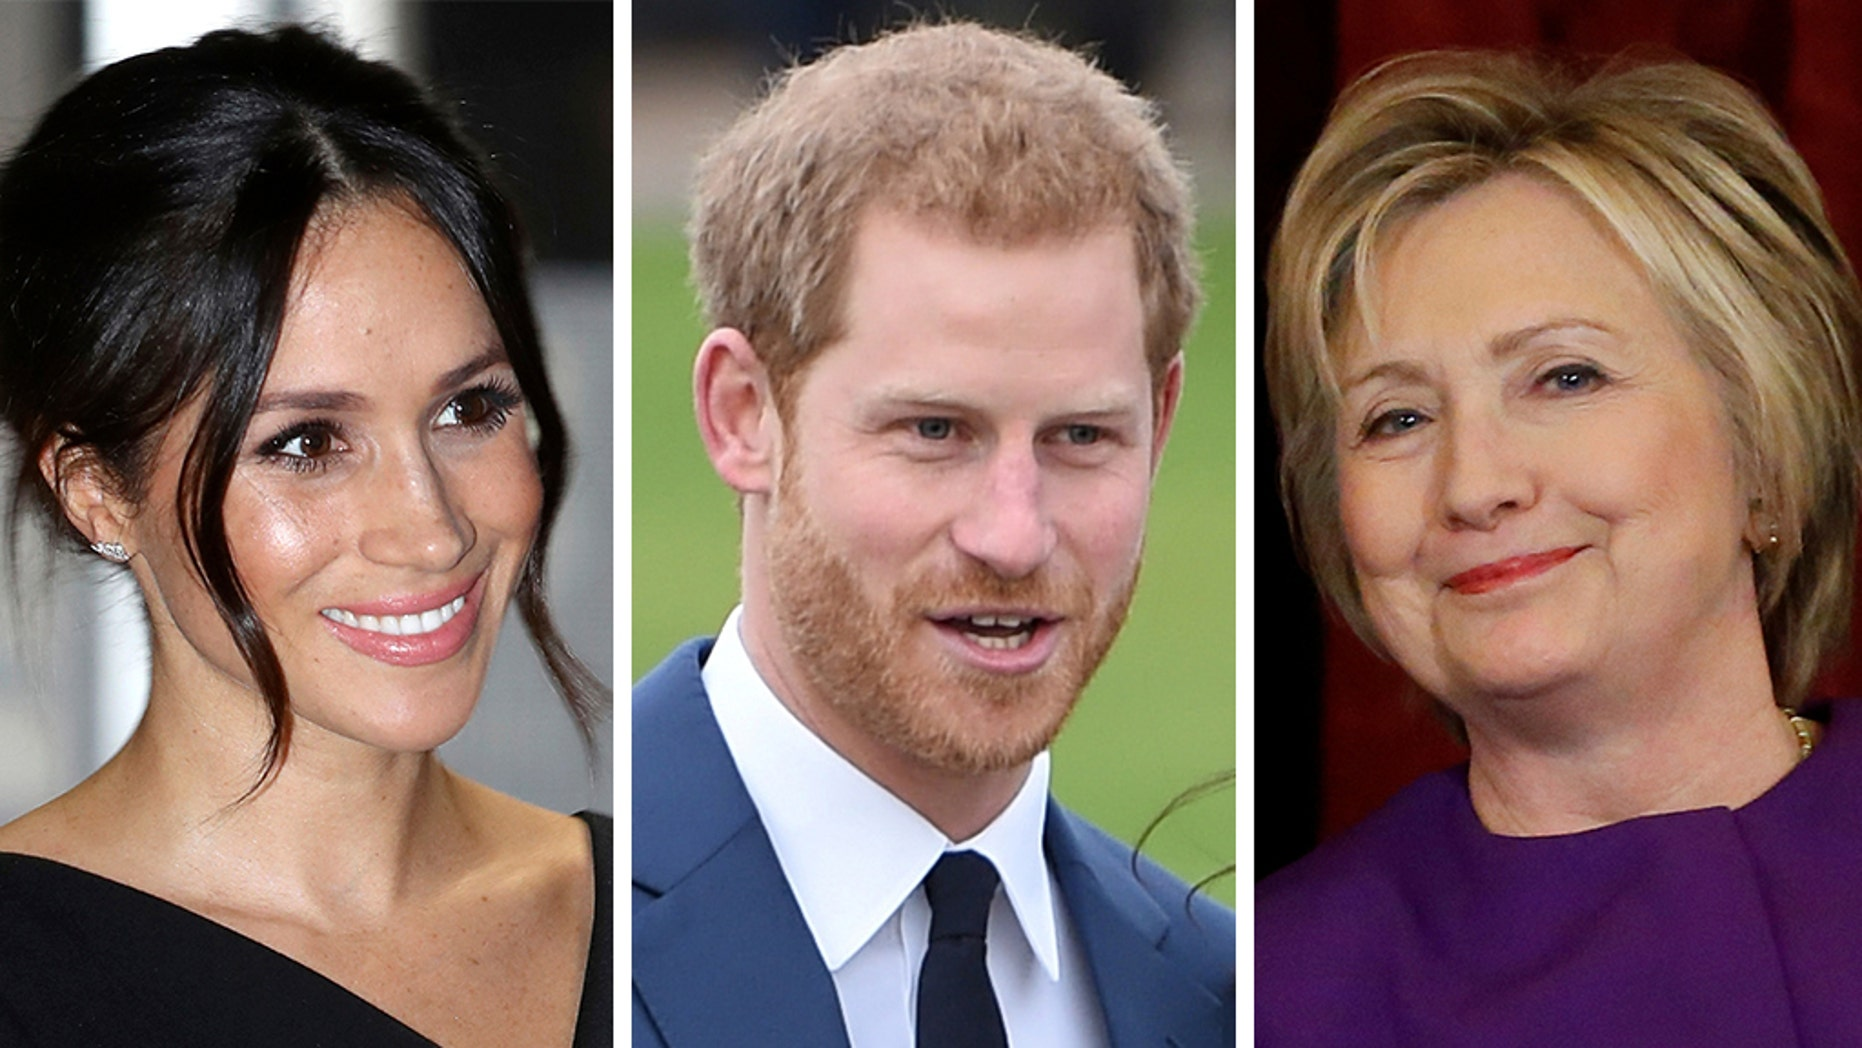 Harry and Meghan to get own royal household in split from Cambridges